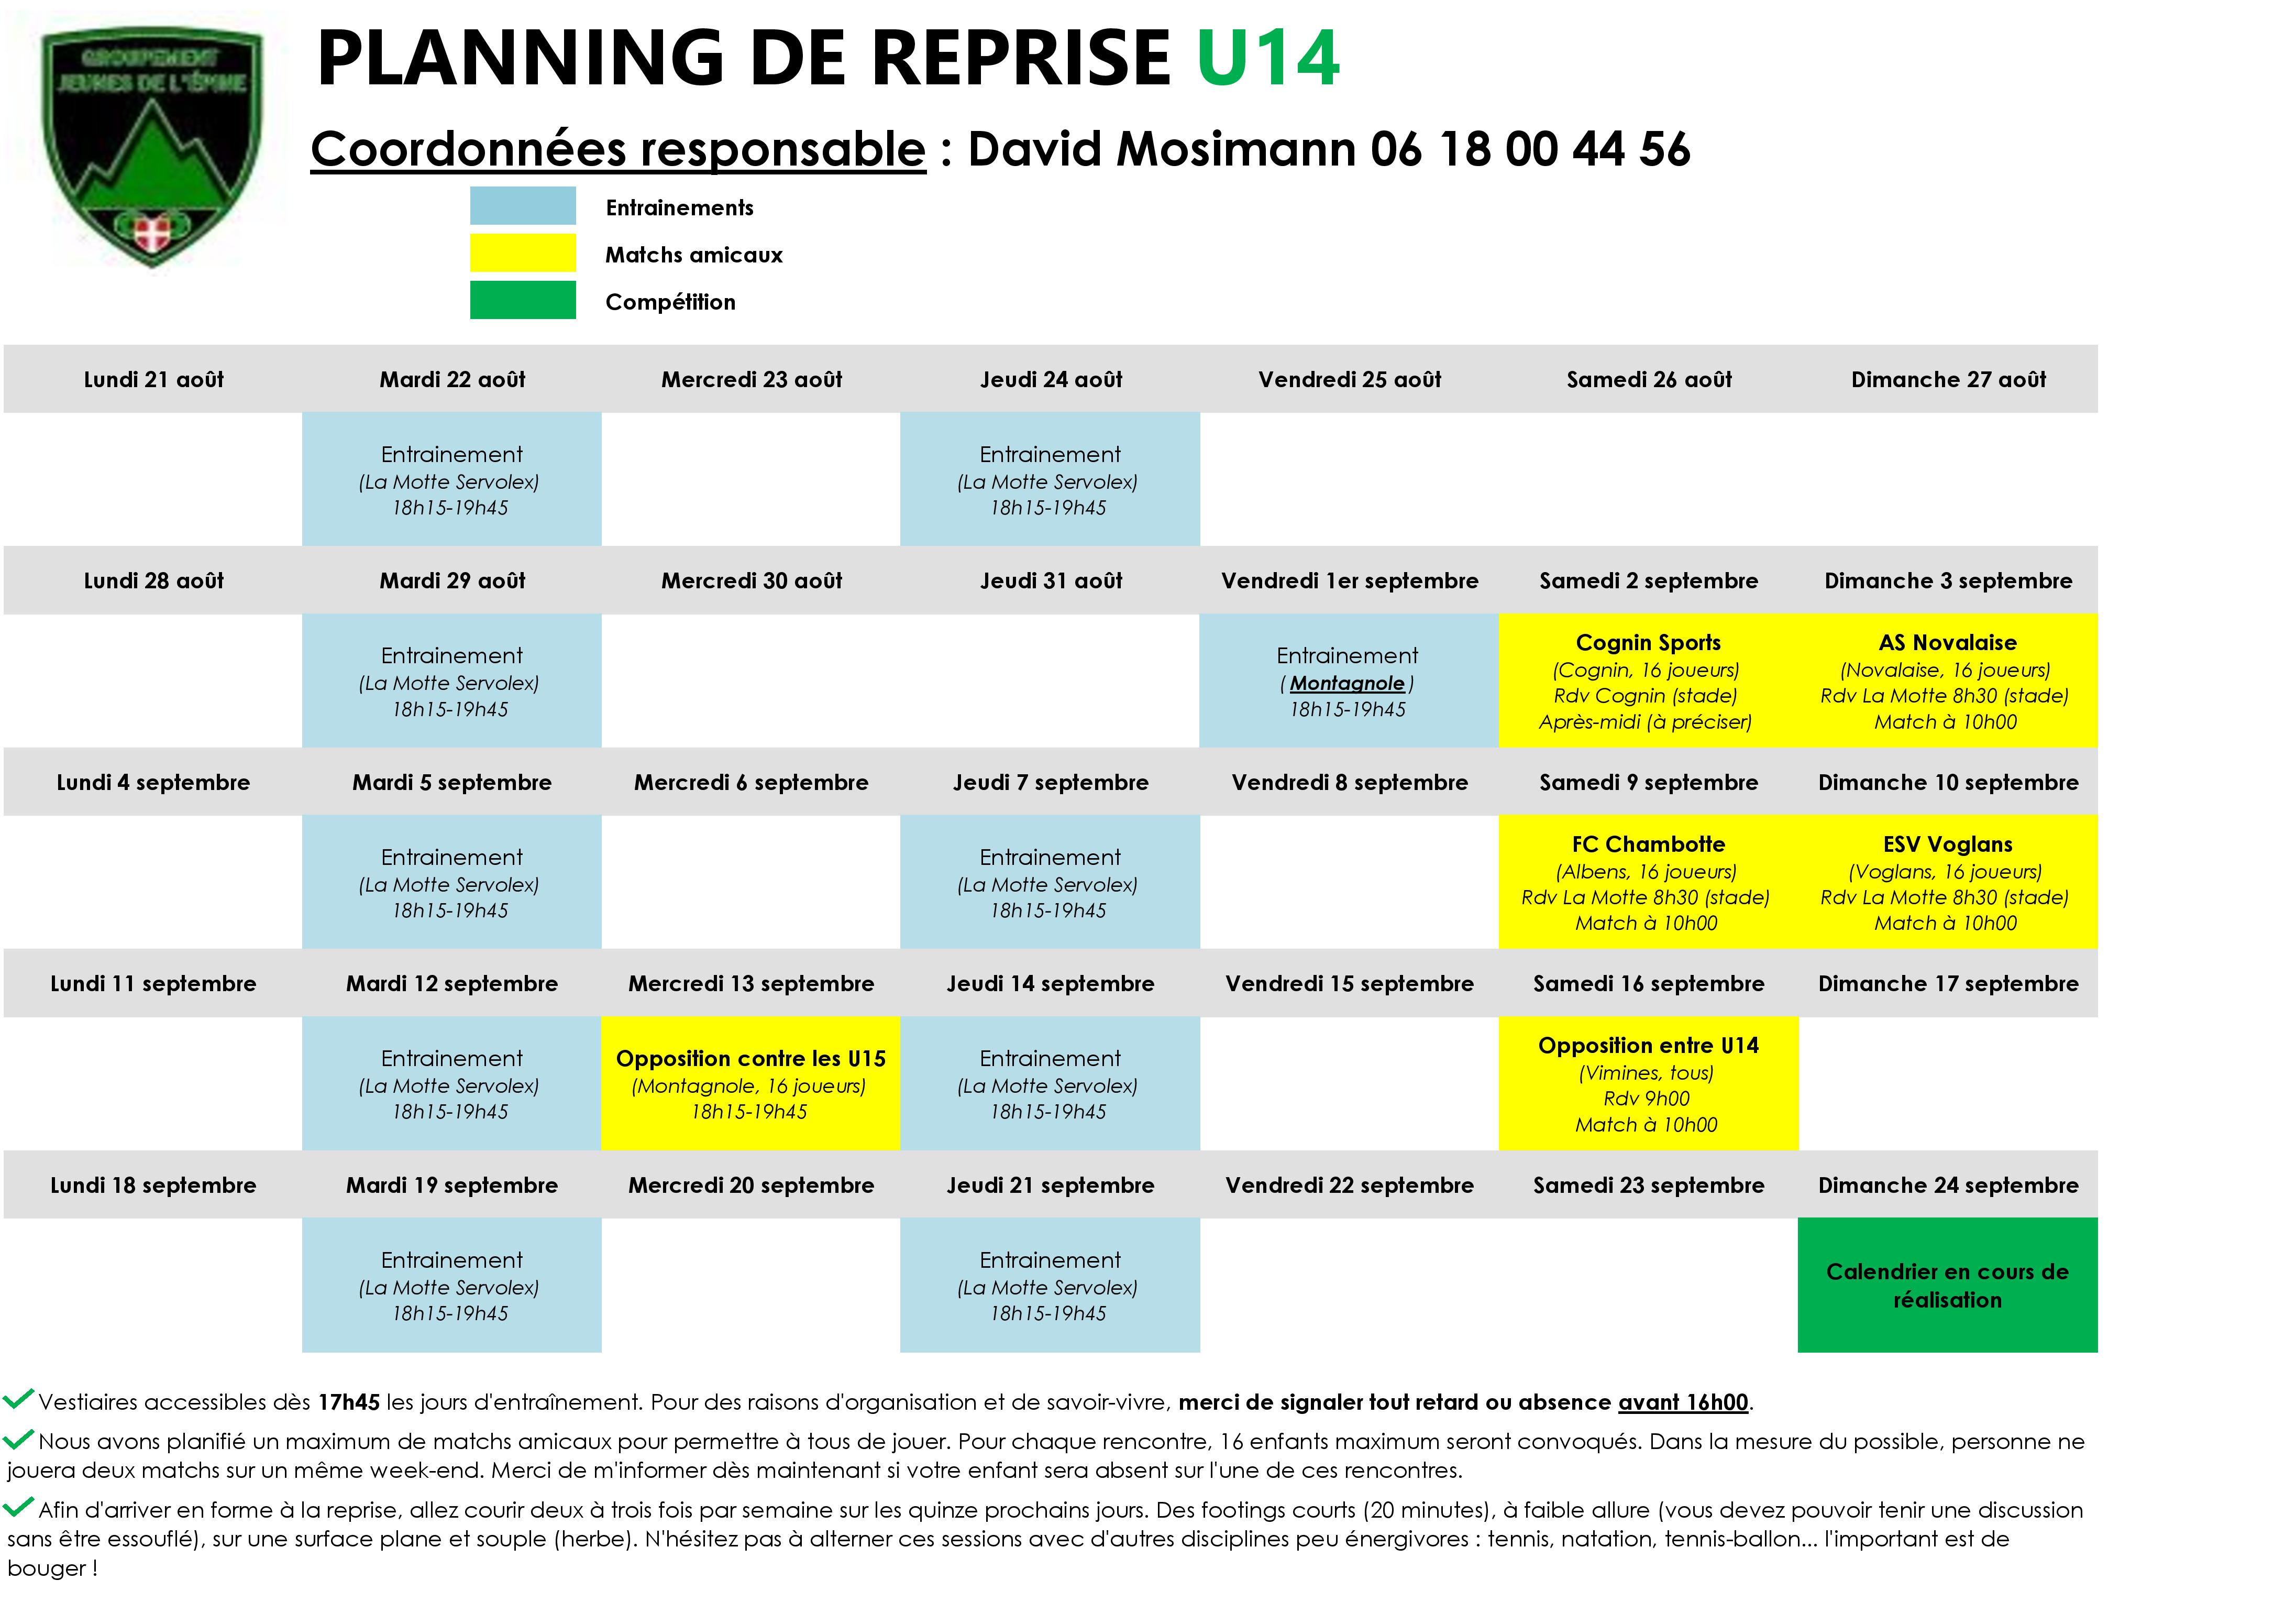 2017%20-%20Planning%20reprise-page-001.jpg